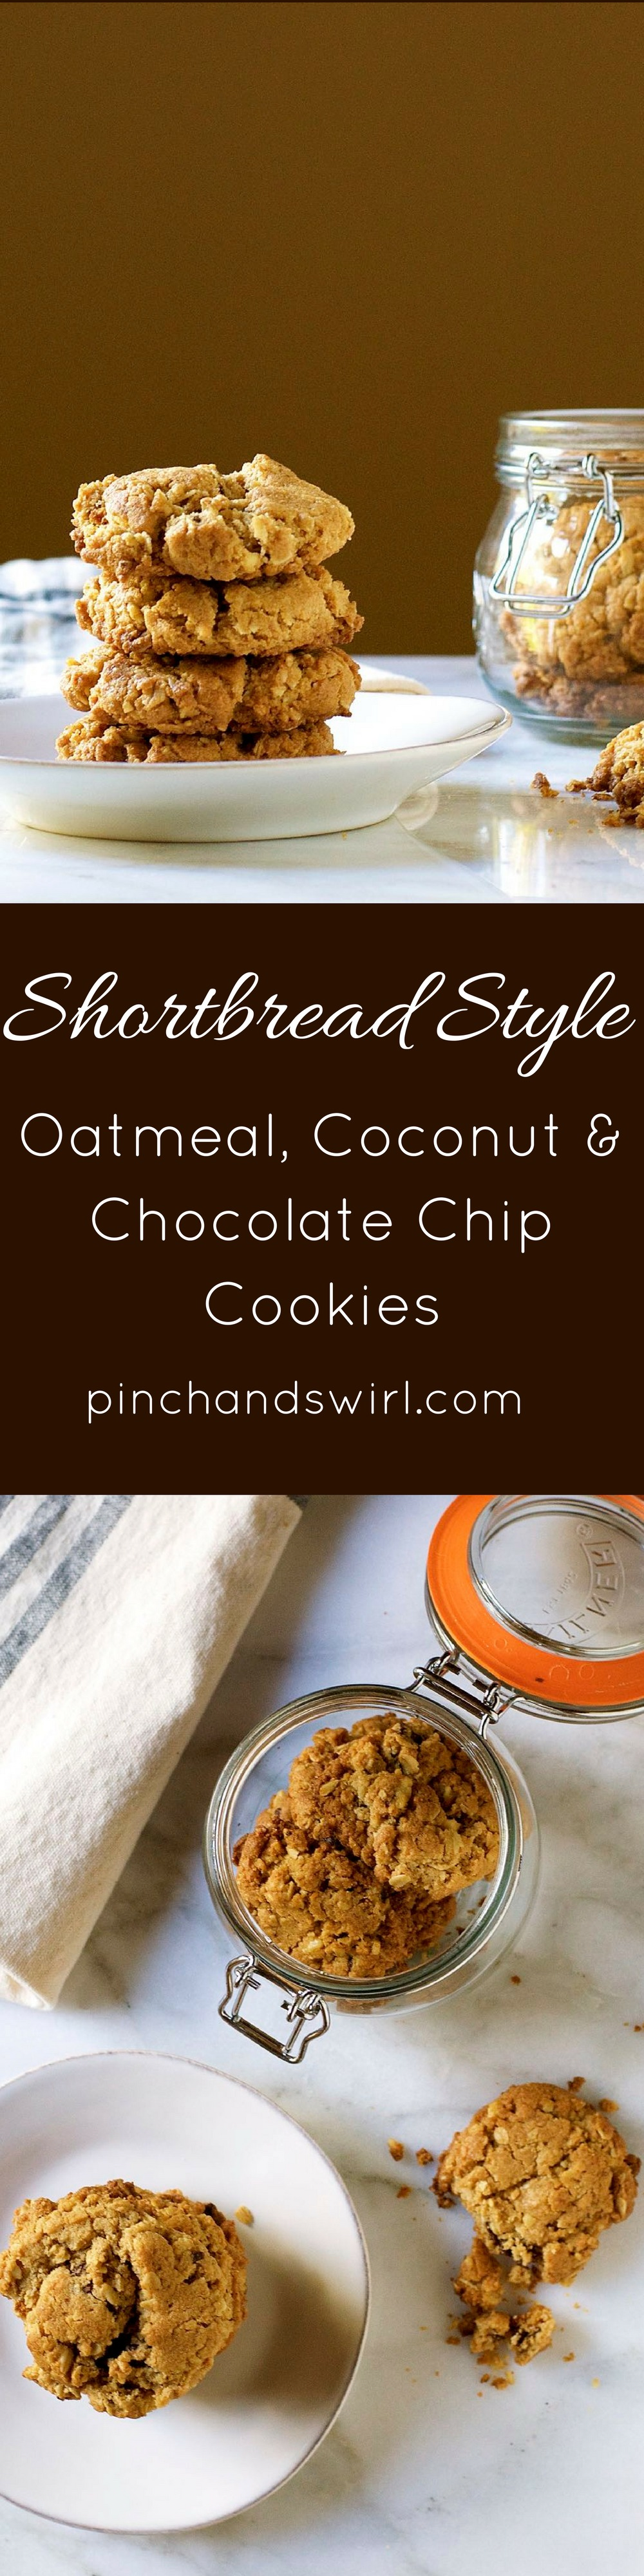 Shortbread Style Oatmeal Coconut and Chocolate Chip Cookies - the perfect amount of tender crunch! #cookies #recipes #cookiemonster